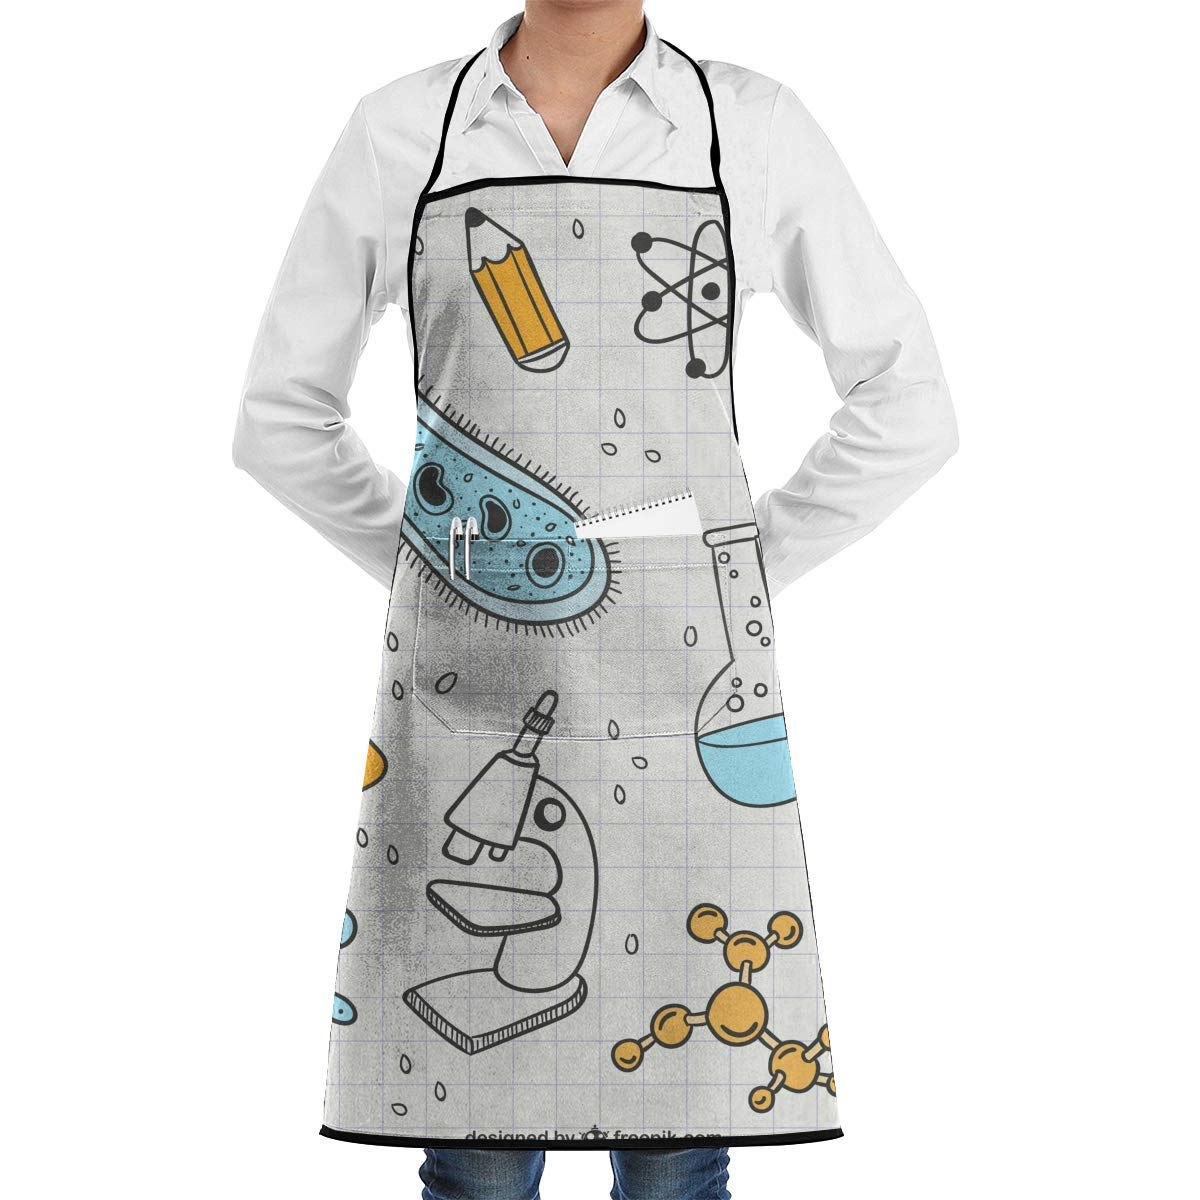 Waterproof Chef Apron with Front Pocket for Kitchen Cooking Craft Baking QIAOJIE Science 3 Bib Apron for Women Men